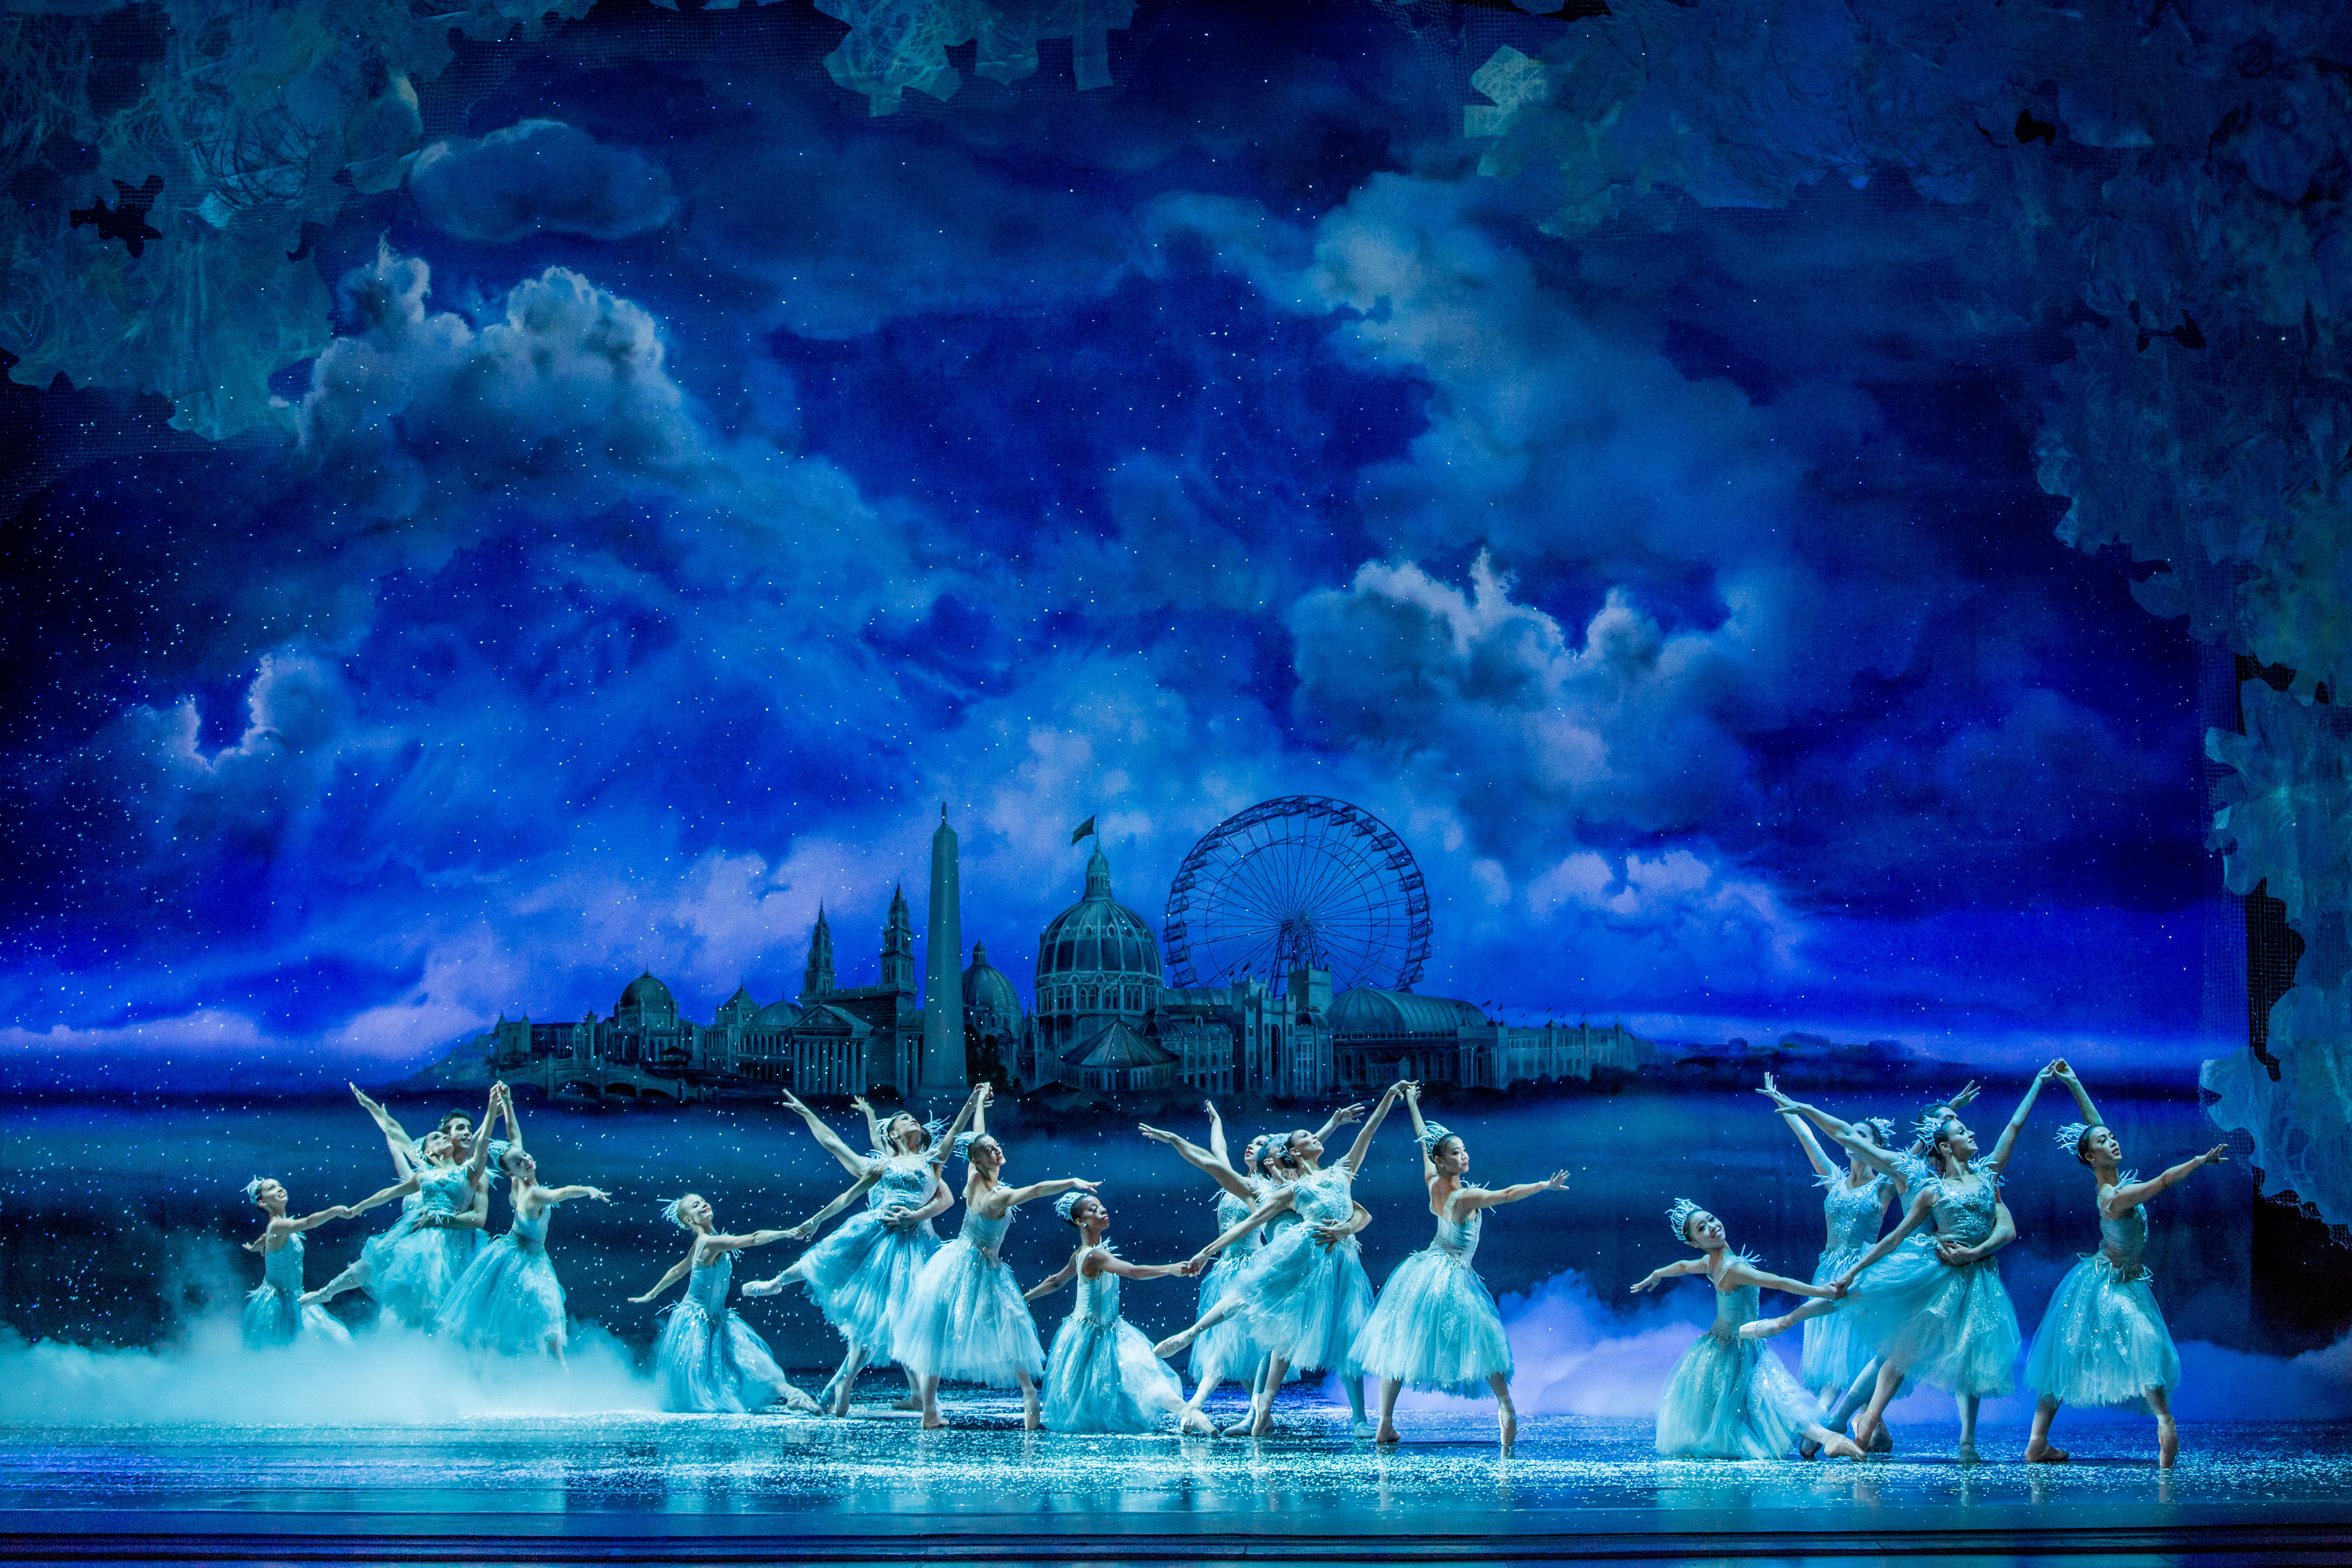 """The Joffrey Ballet's production of """"The Nutcracker"""" is among the casualties of the COVID-19 pandemic, as the dance company announced the cancellation of the rest of its productions slated for 2020, including the holiday season staple."""